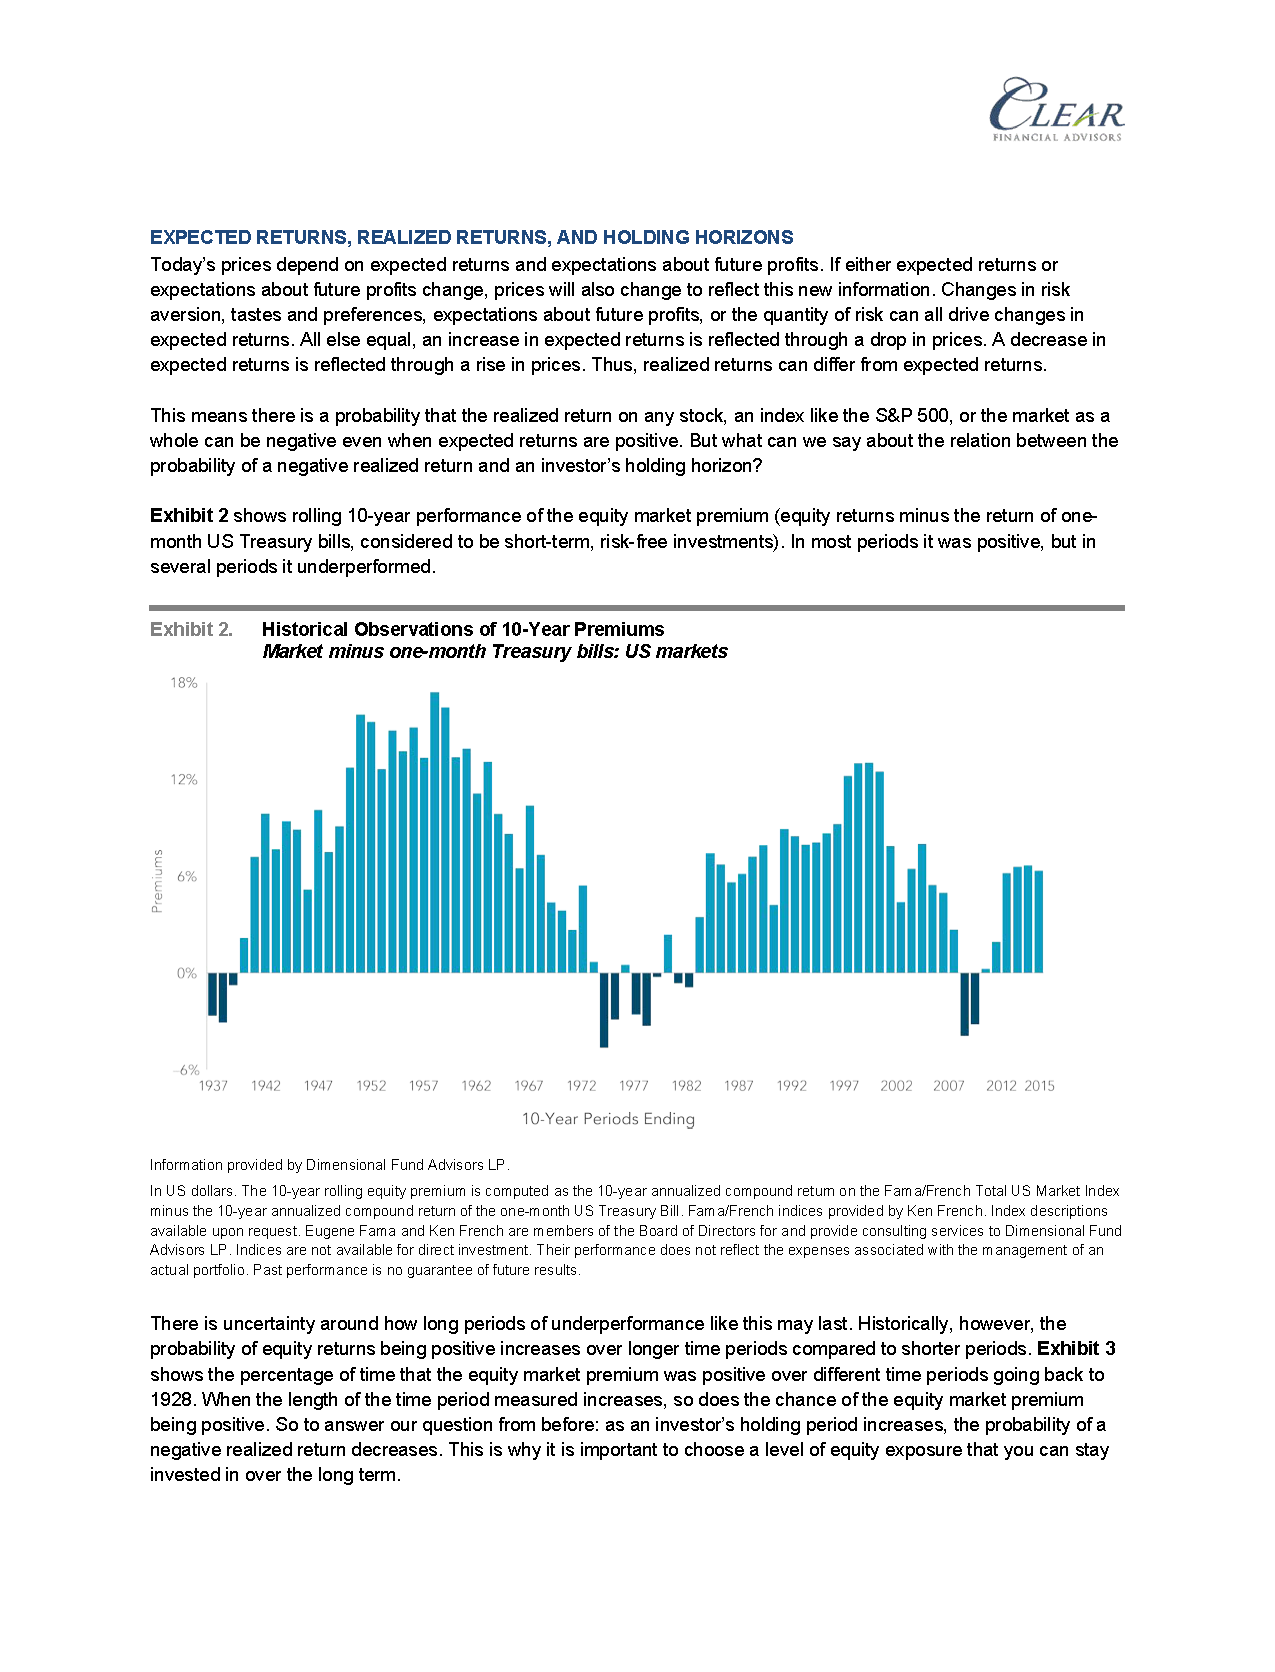 New Market Highs and Positive Expected Returns_Page_3